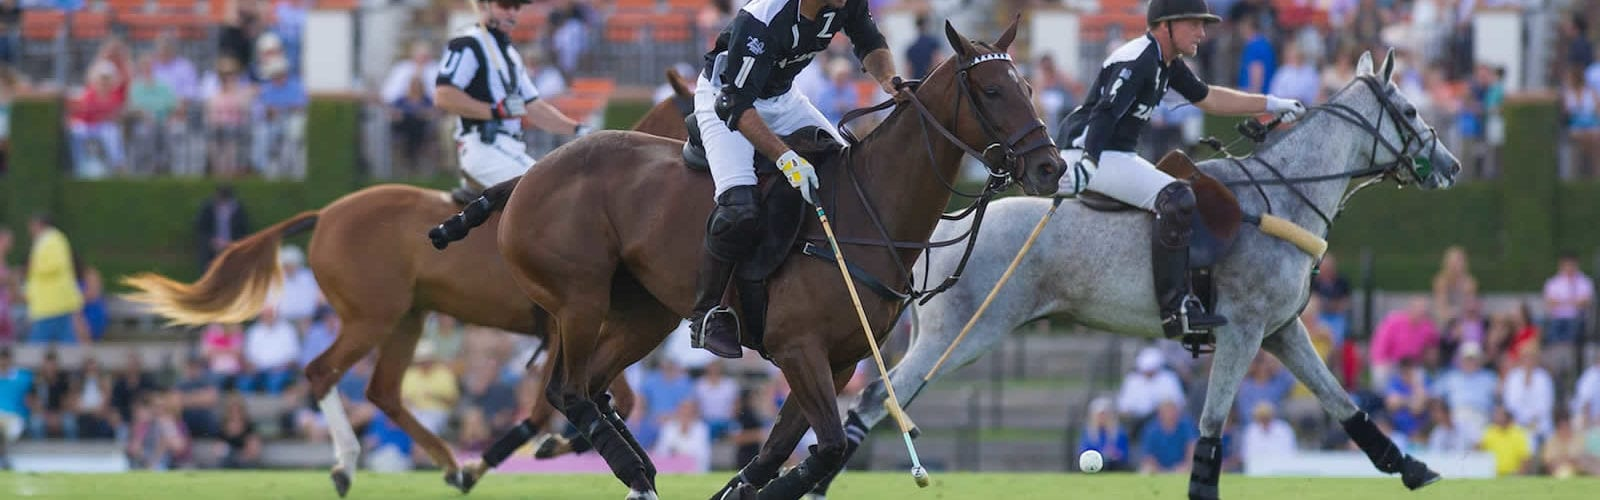 match-polo-saison-palm-beach-floride-une